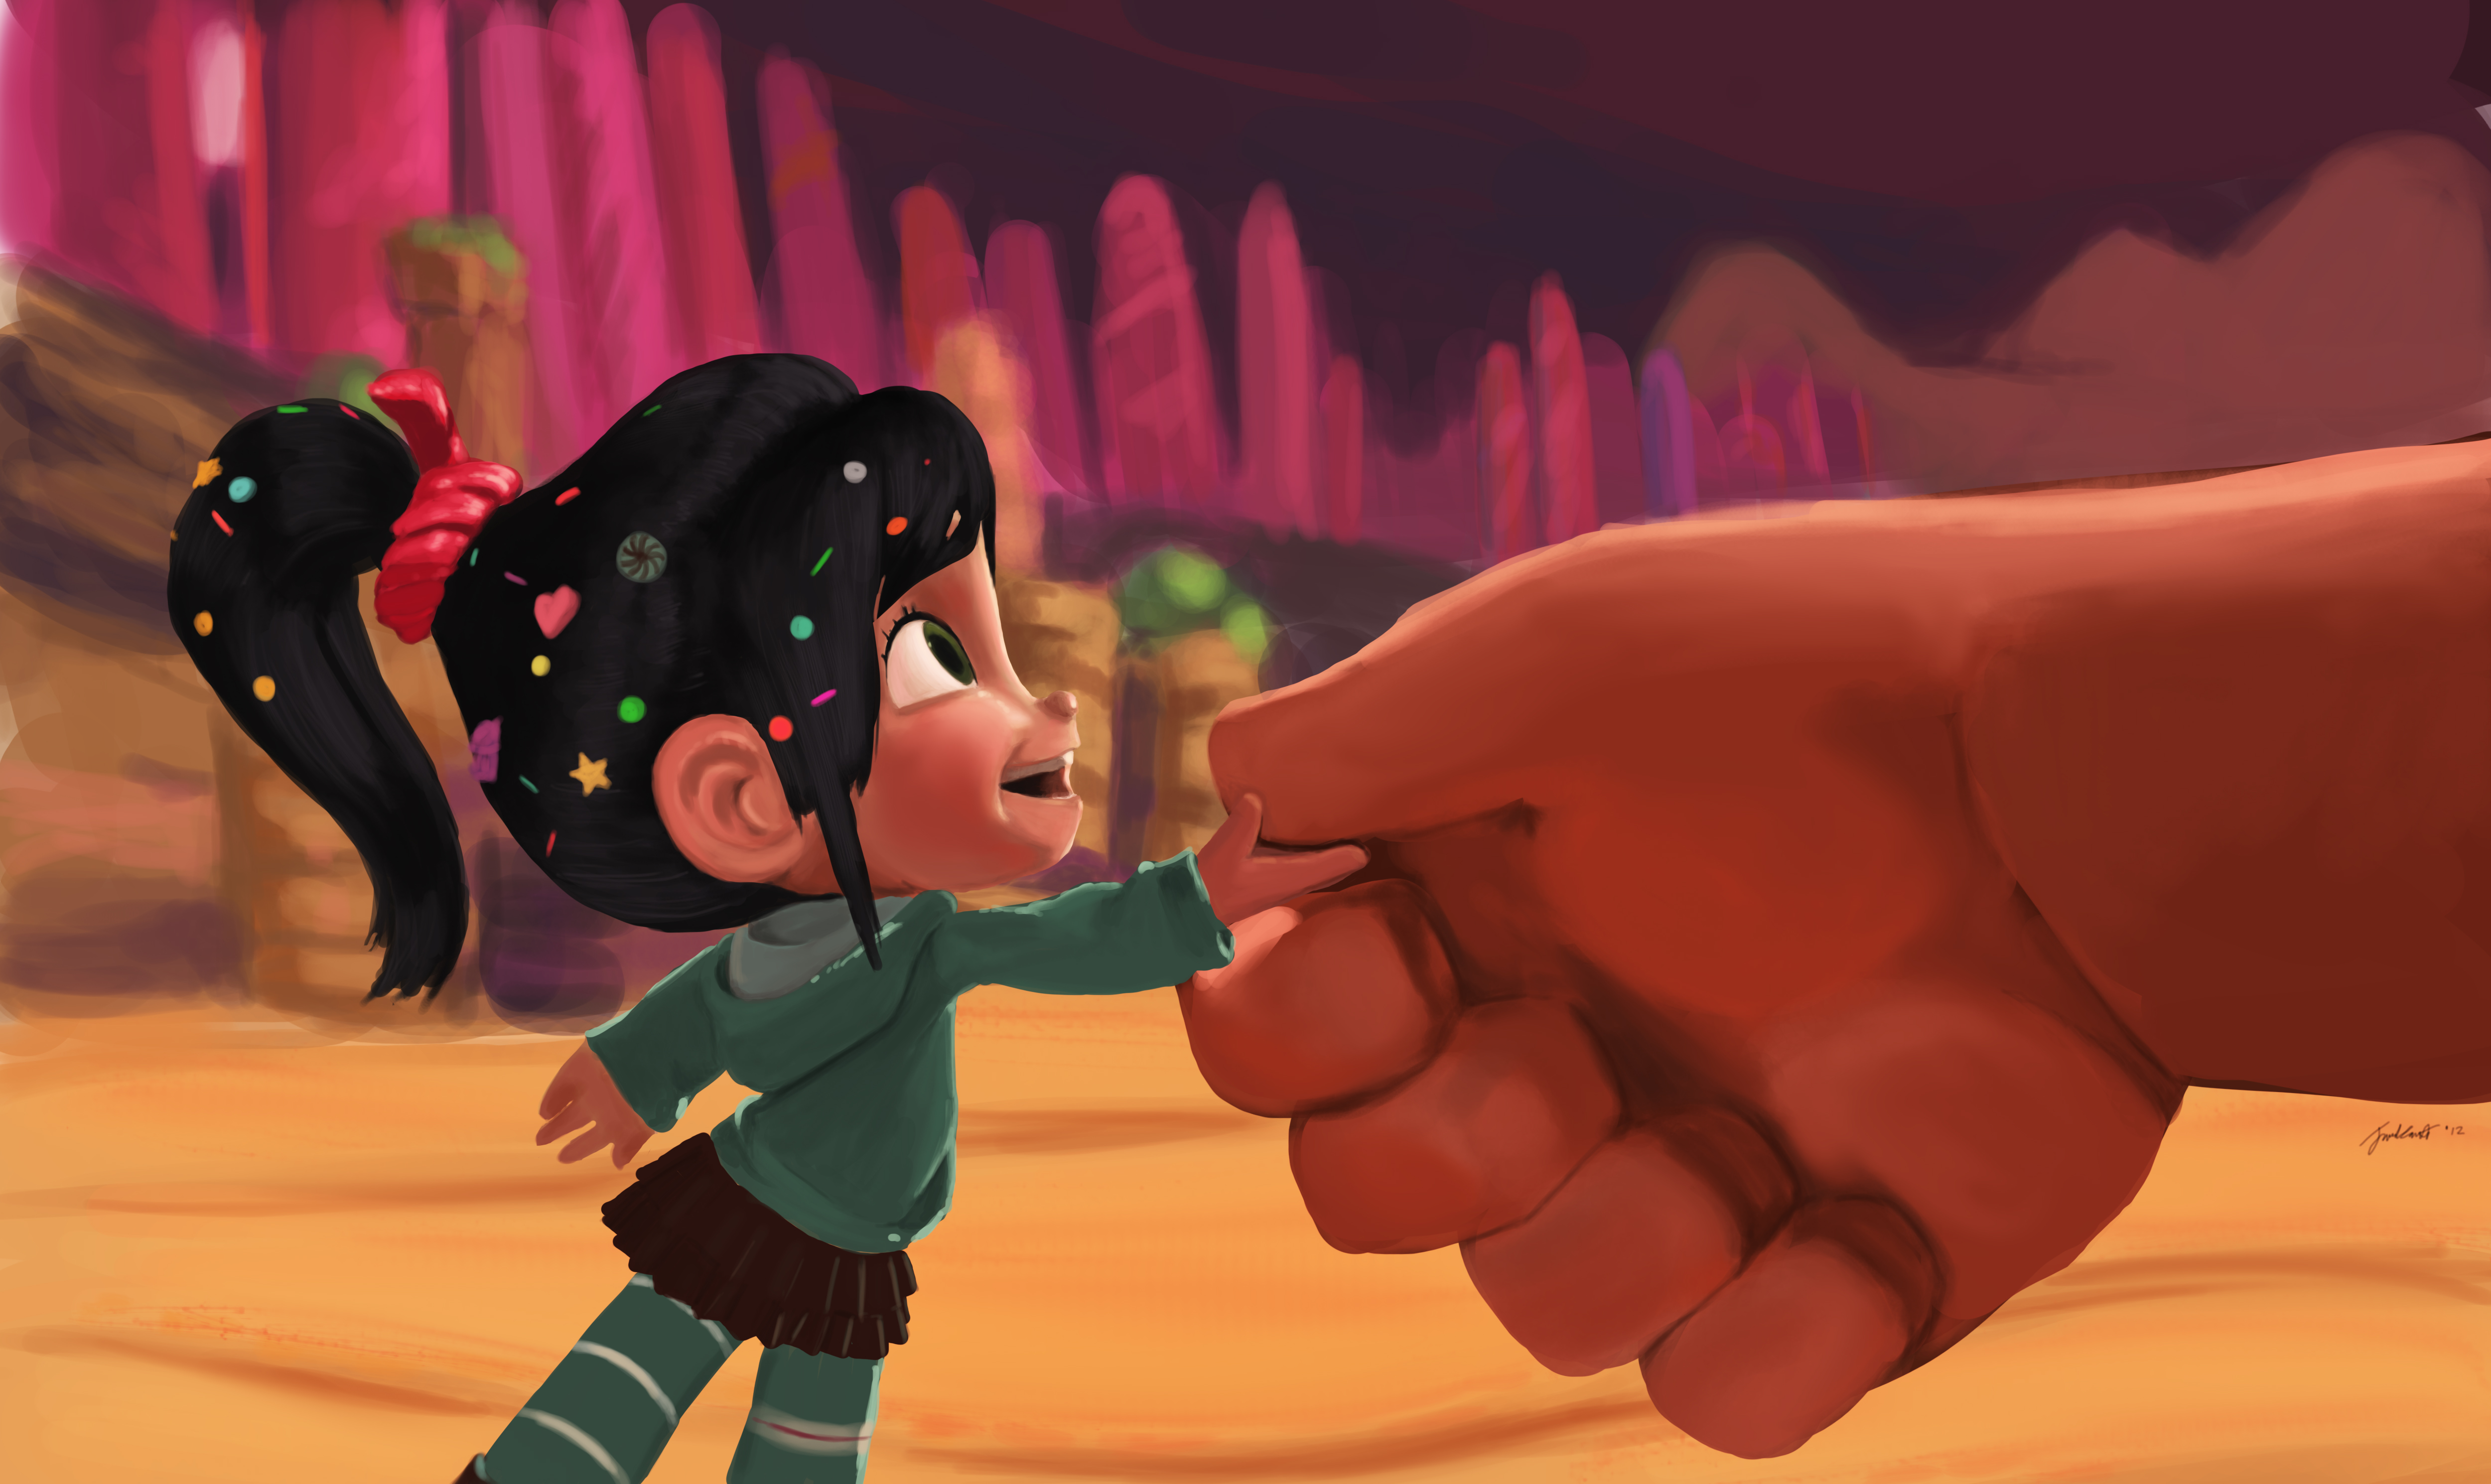 Wreck It Ralph Wallpapers ID495042